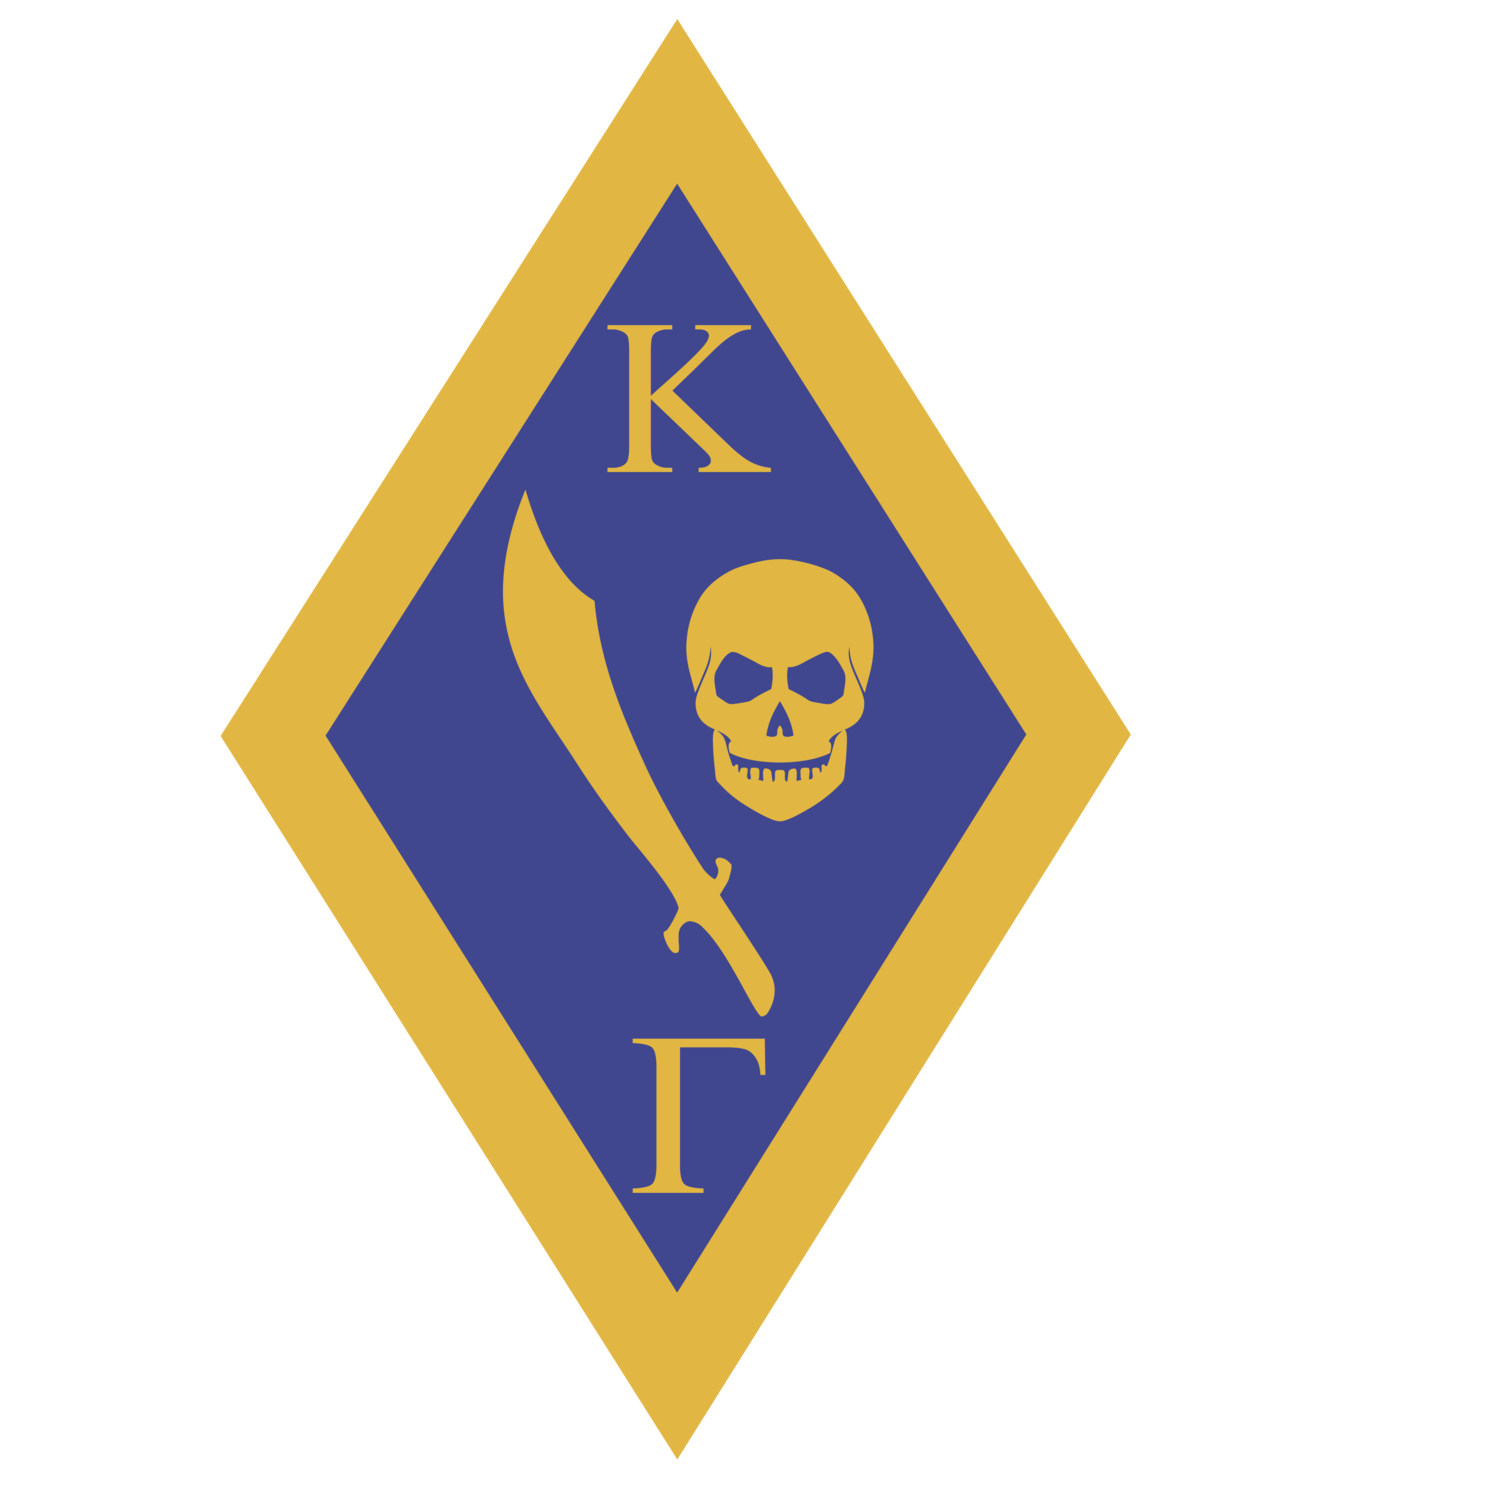 The Kappa Gamma Fraternity | est. 1901